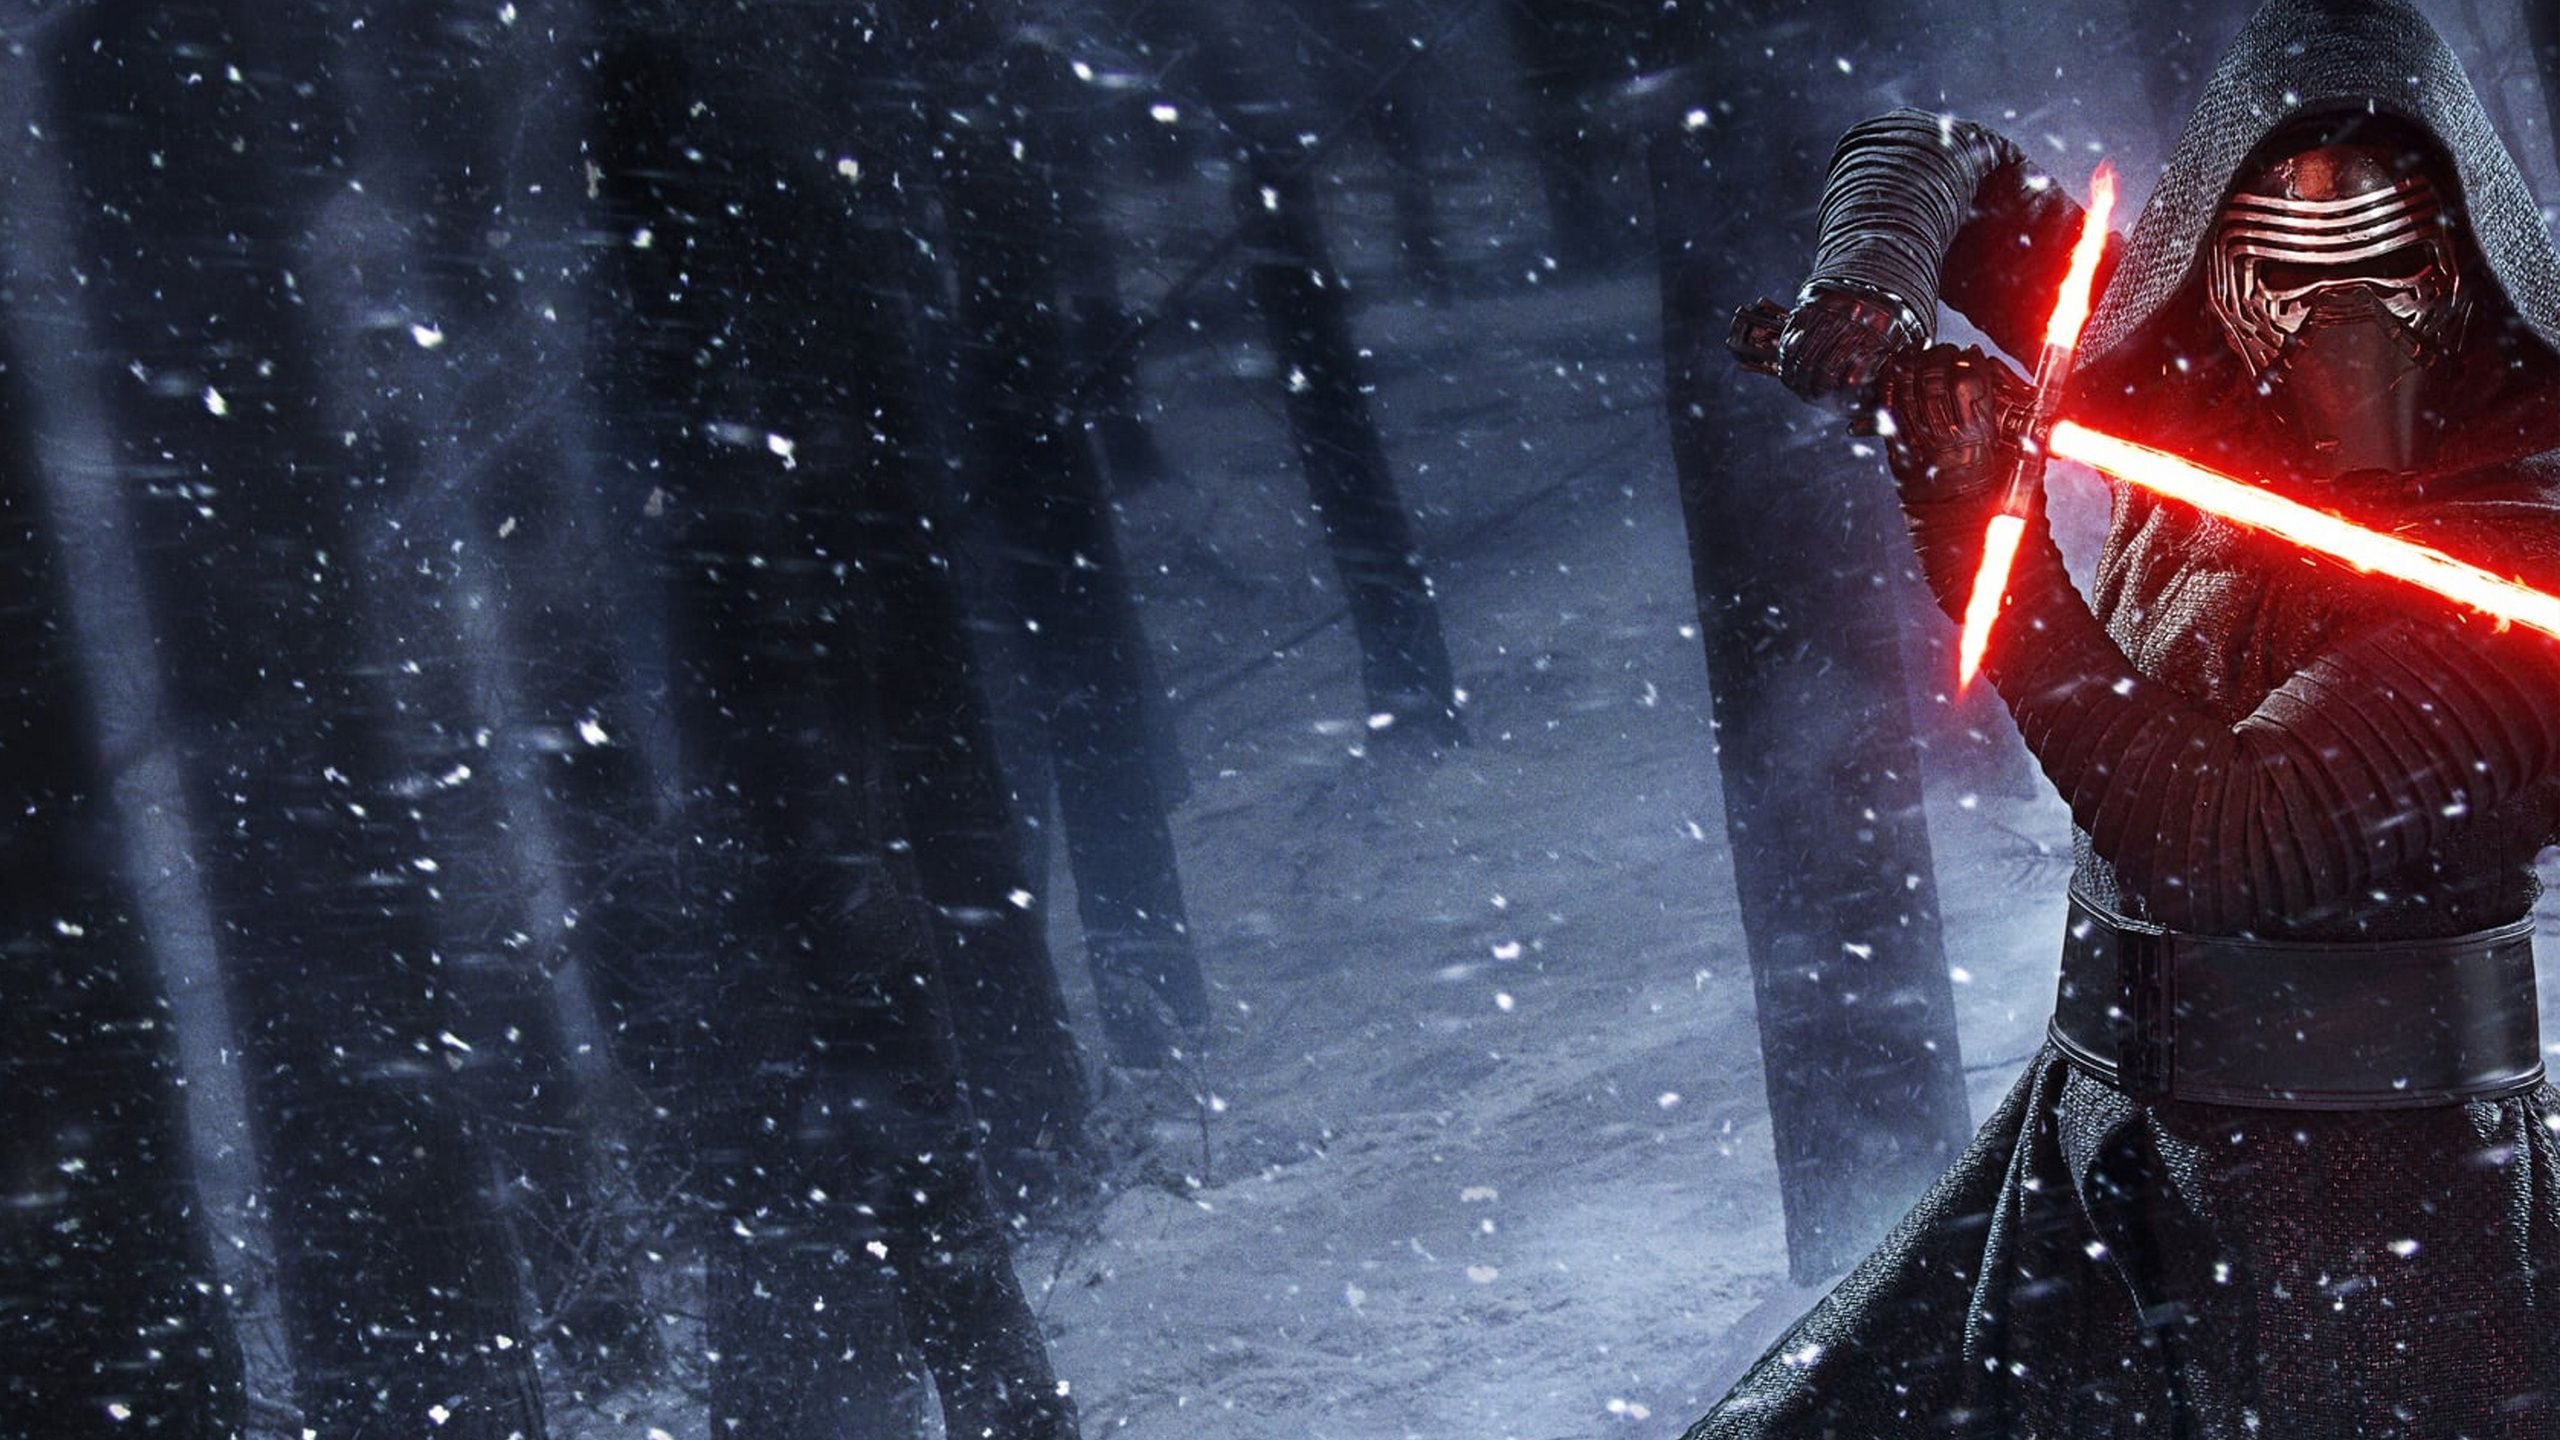 Star Wars The Force Awakens Wallpapers Mobile For Desktop